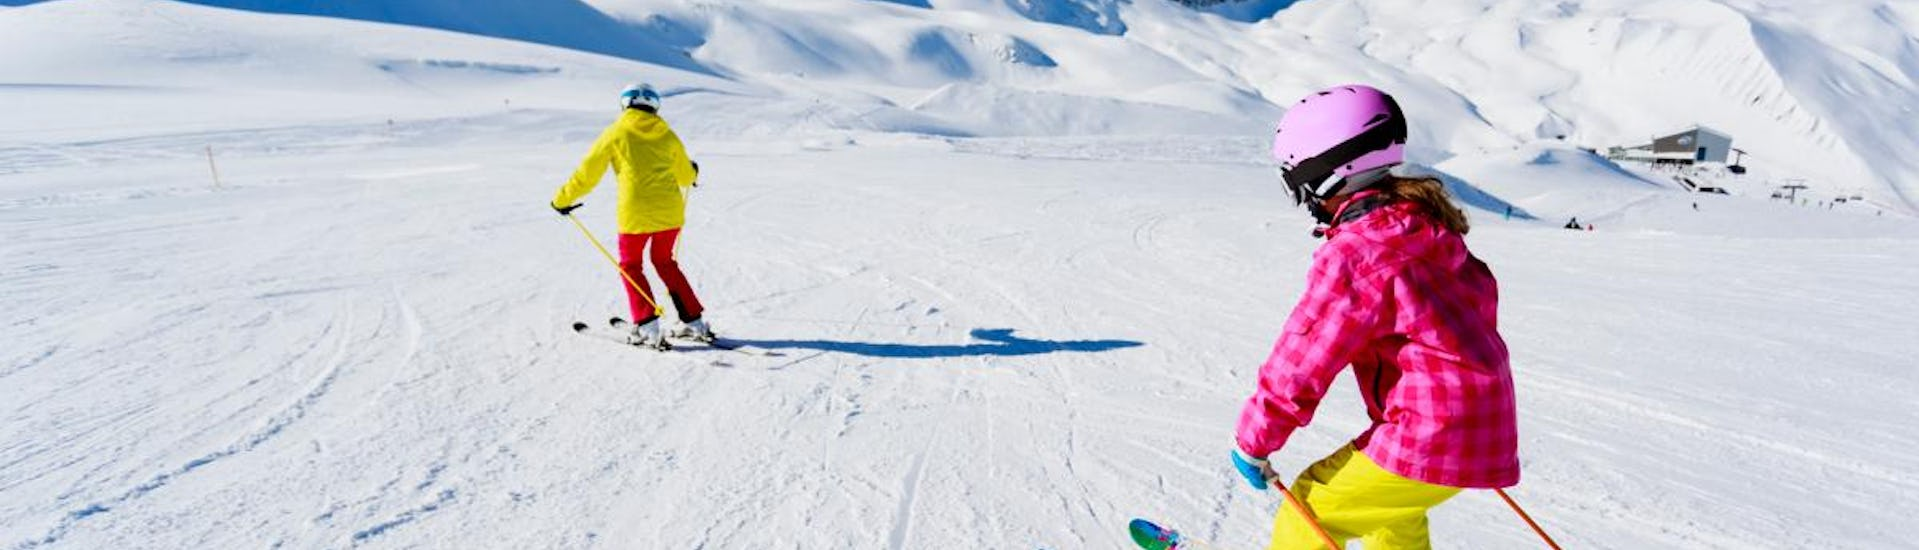 Private Ski Lessons for Kids - All Levels